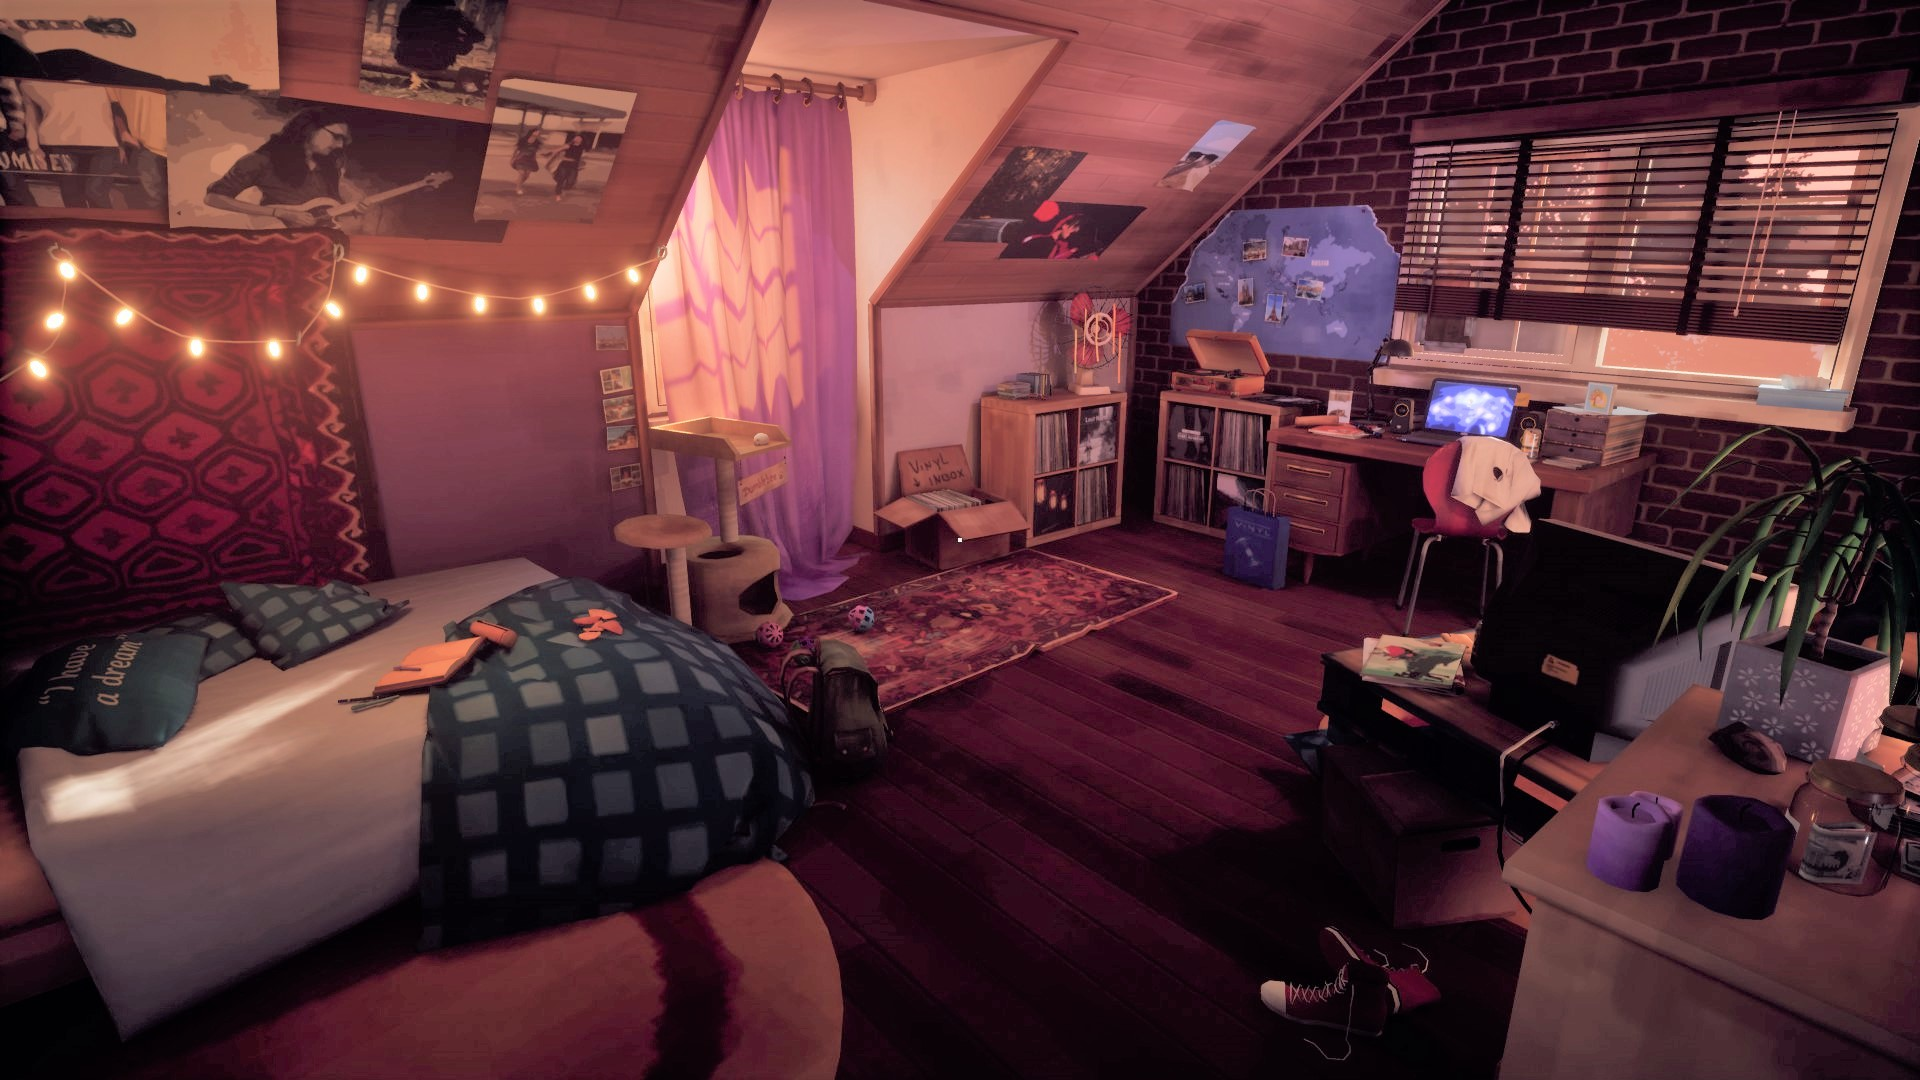 dimly lit bedroom, various clutter and decor on walls and floors, 3/10 free steam games